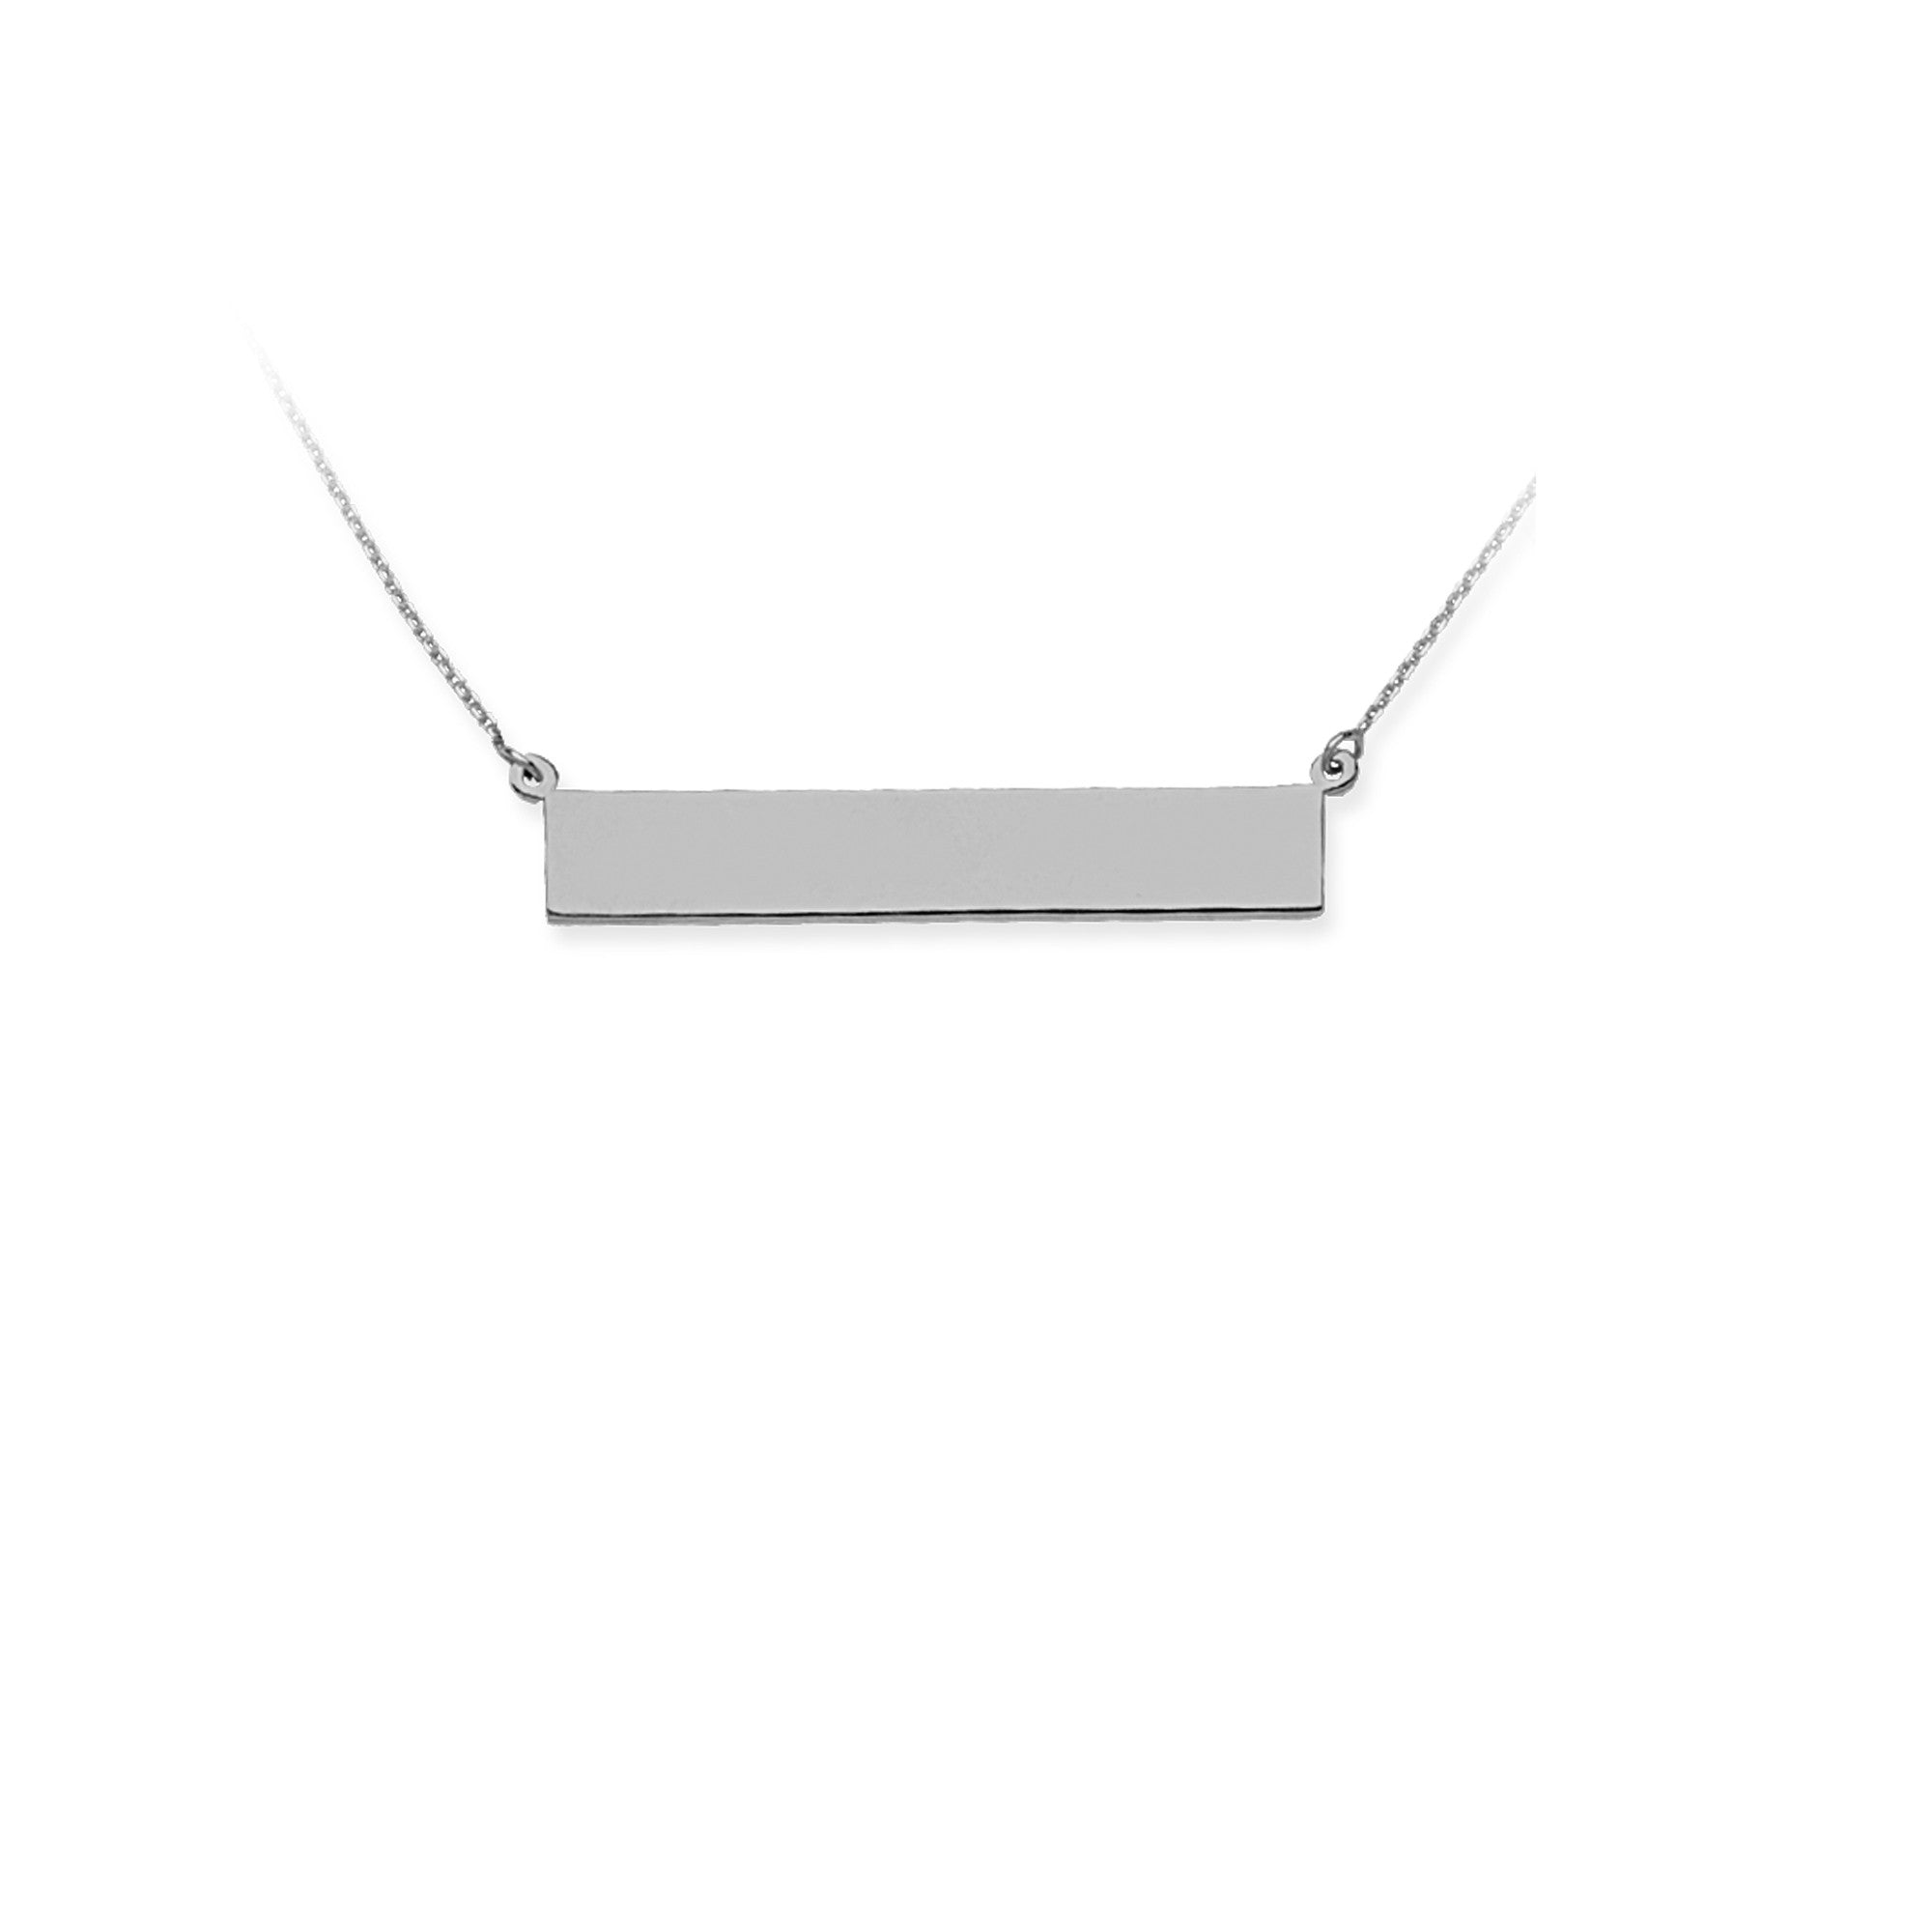 White Gold Bar Necklaces (Engravable)